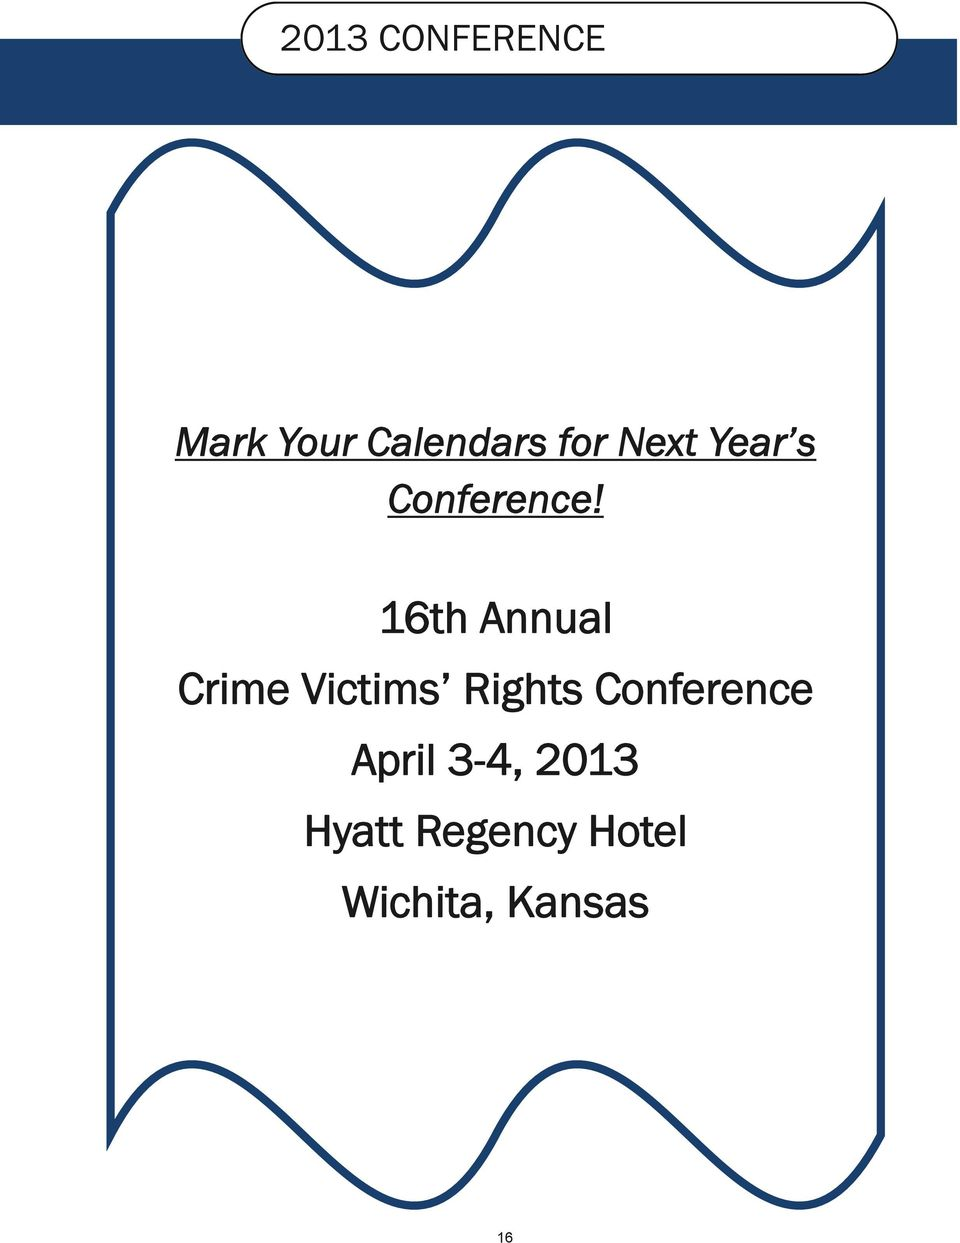 16th Annual Crime Victims Rights